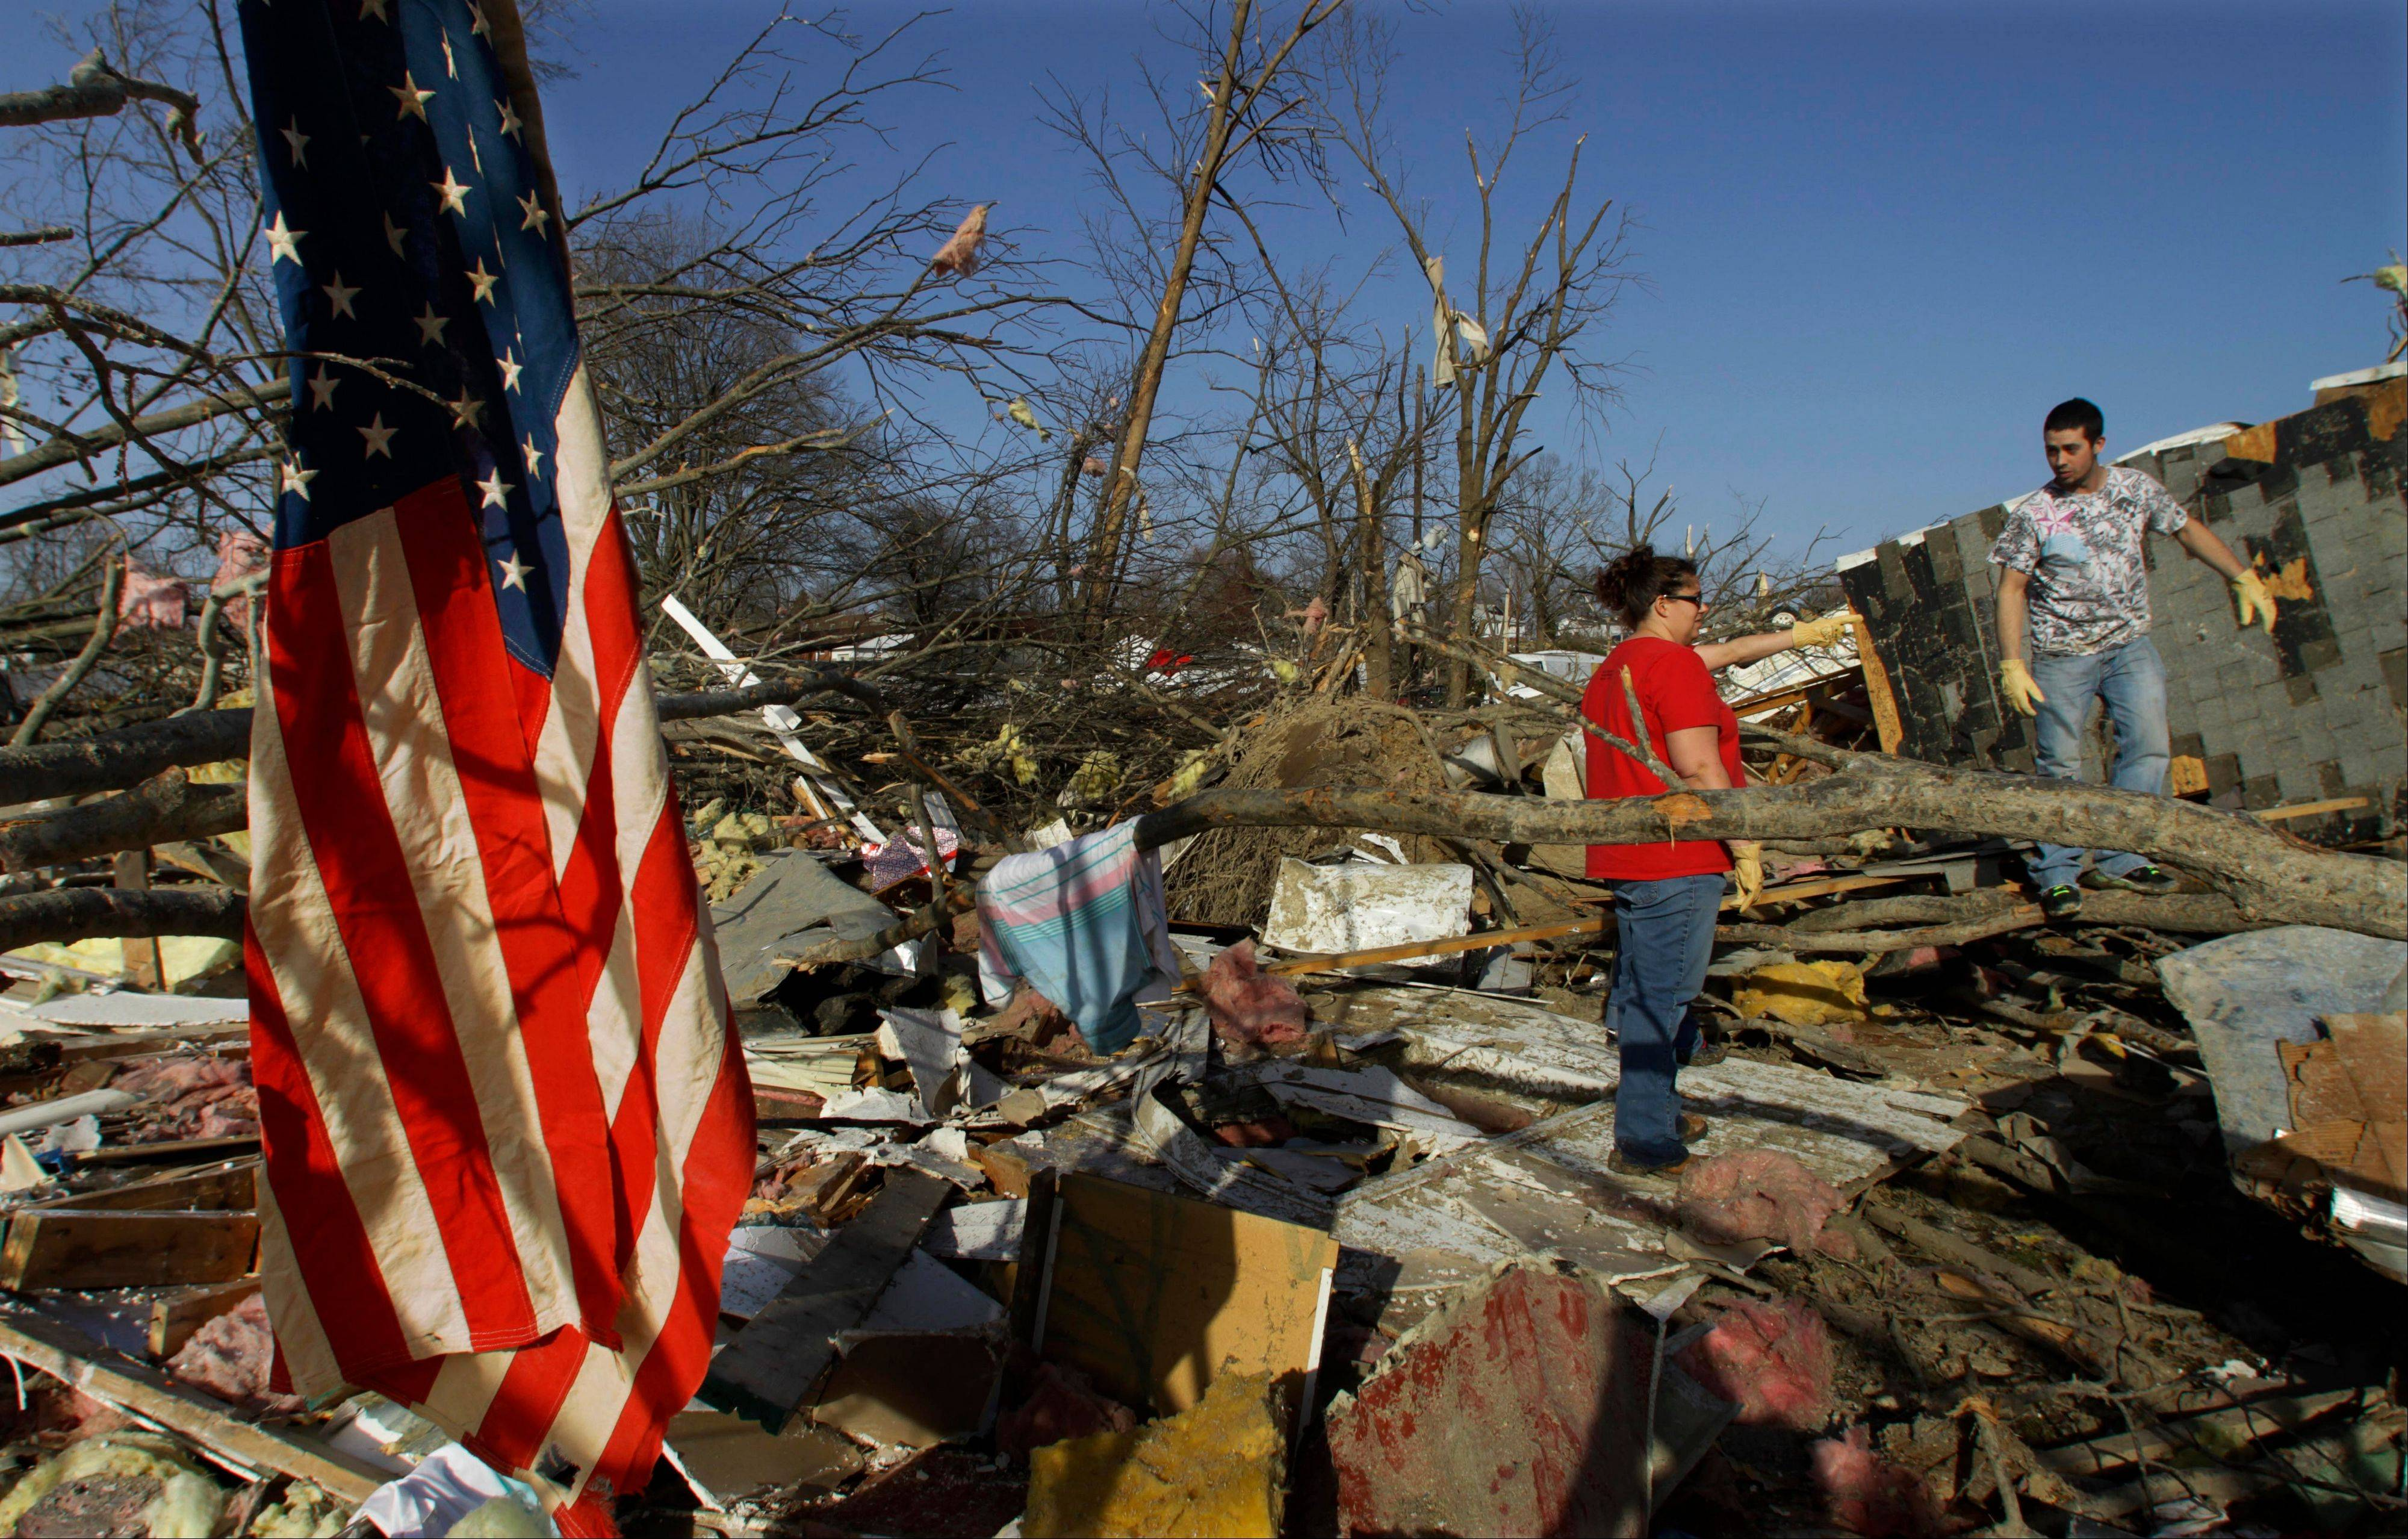 Jeff Rann, 29, right, pauses while sifting for possessions in the remains of their parents' duplex trying to salvage what he can after a tornado destroyed their parents home Wednesday, Feb. 29, 2012, in Harrisburg, Ill. Their parents were cancer survivors Randy Rann, 65, and Donna Rann. Randy died at the scene and his wife died later at a hospital.